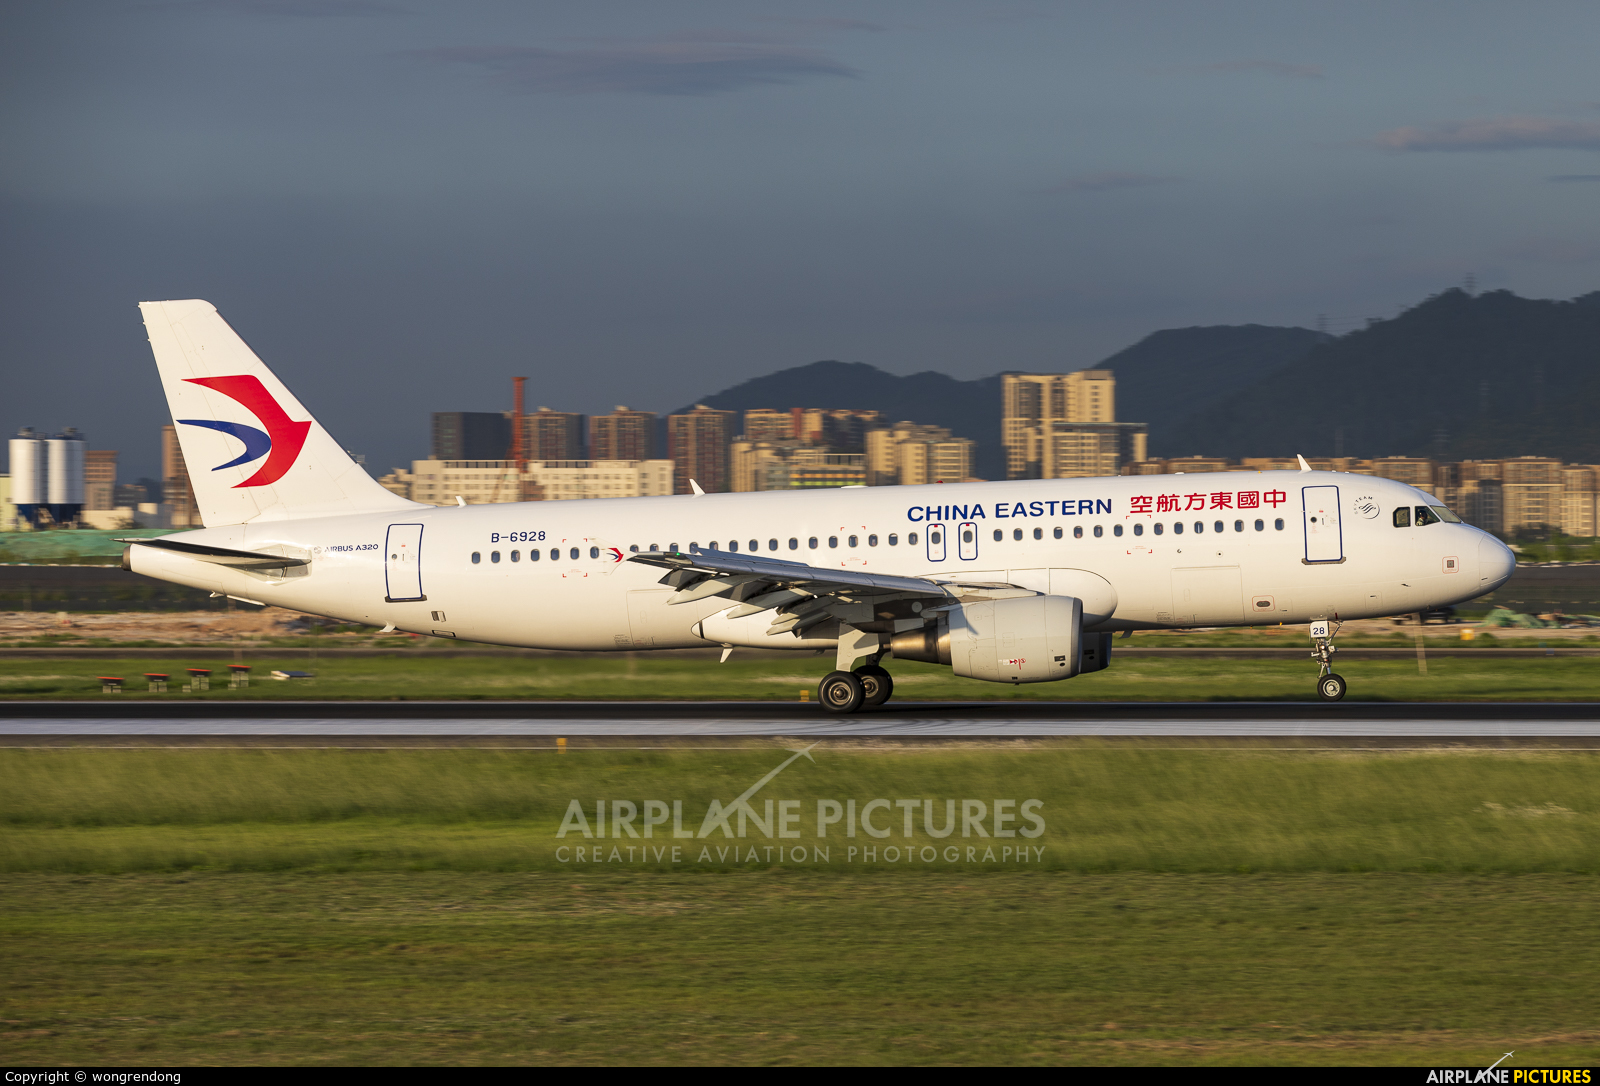 China Eastern Airlines B-6928 aircraft at Shenzhen Bao\